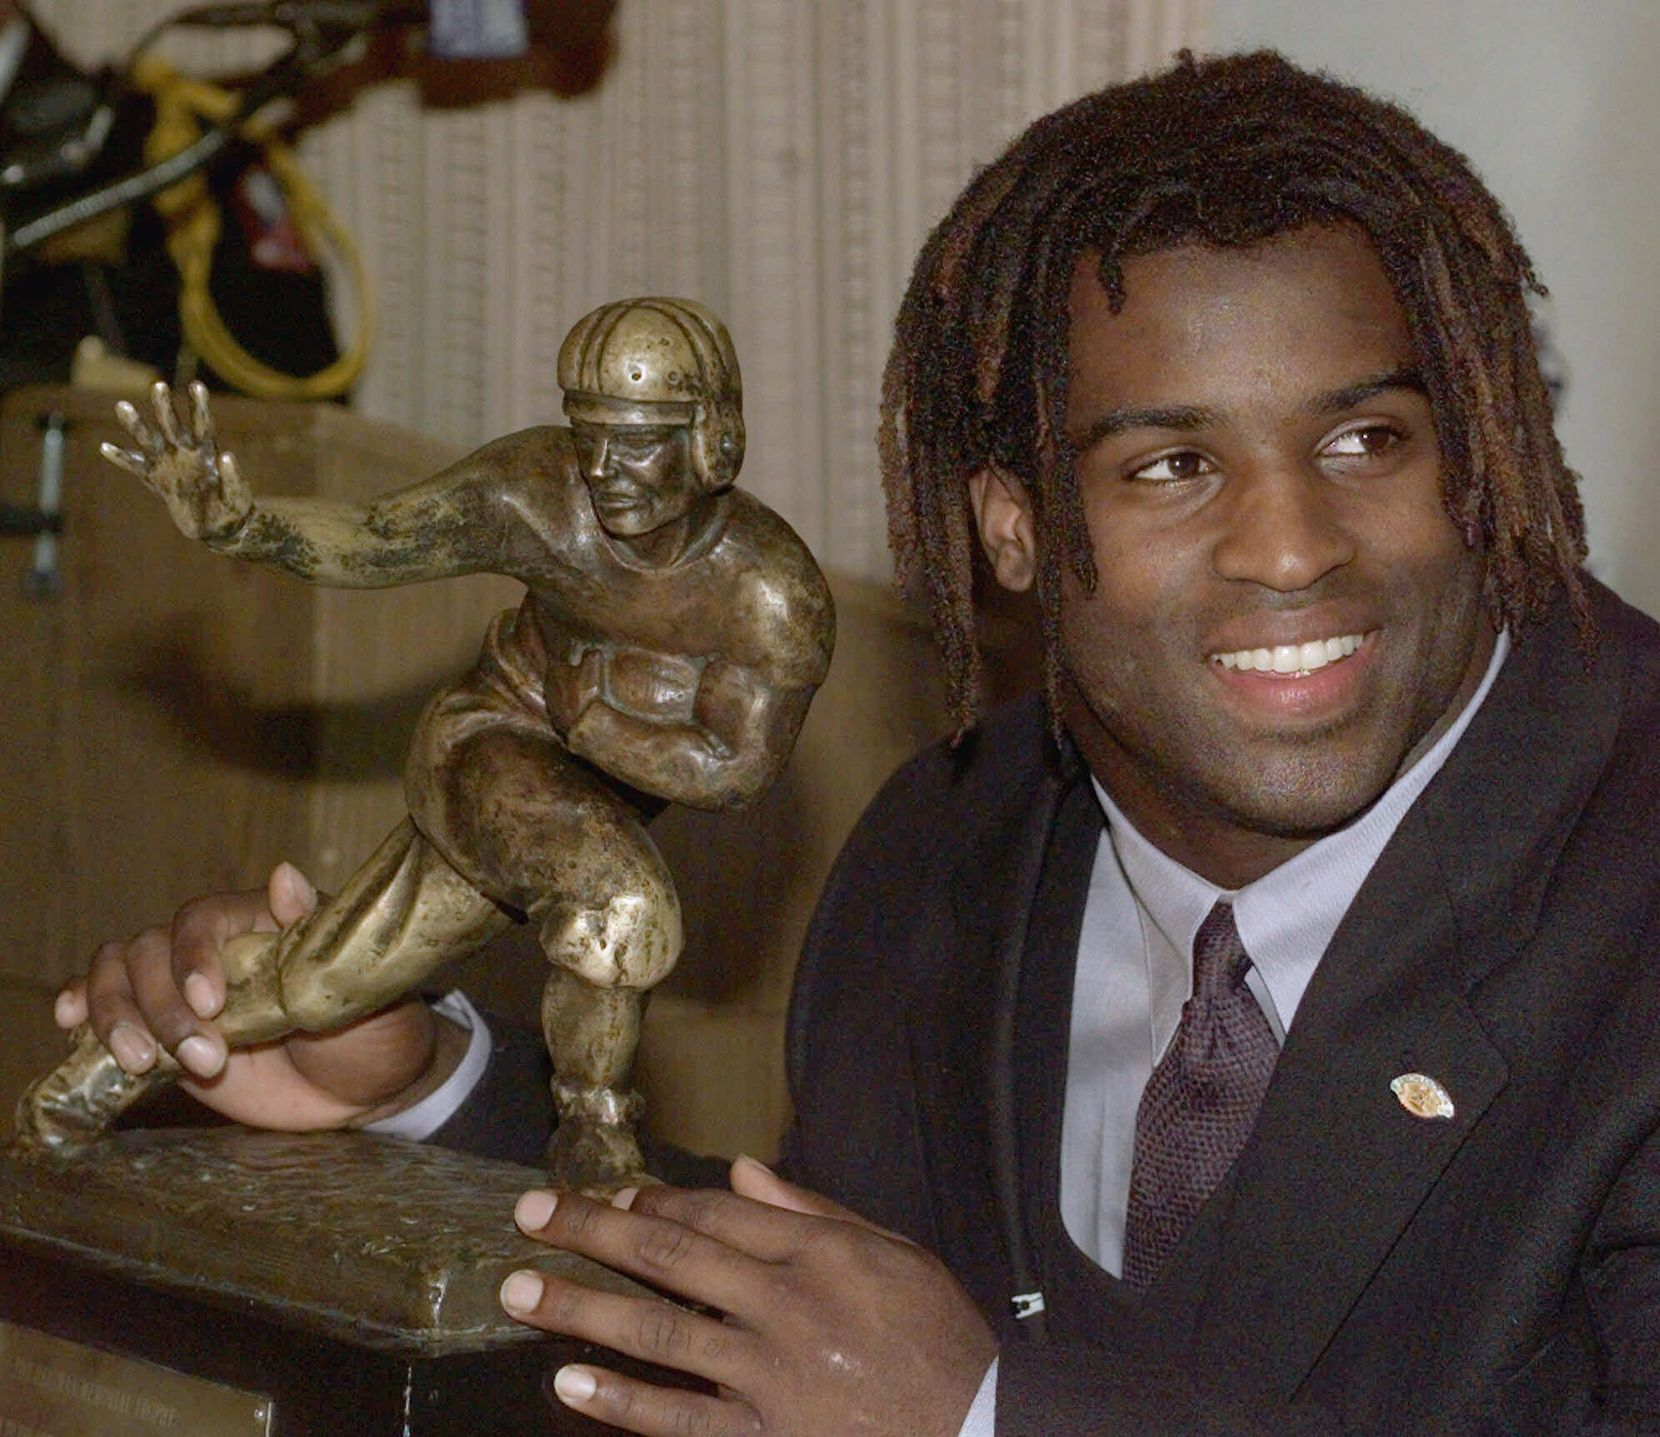 1998 - Ricky Williams (Texas connection: Texas Longhorns running back): Won the Heisman Trophy during his senior season, which happened to be the same year he became the NCAA Division I-A career rushing leader in 1998 with 6,279 yards (broken one year later by Wisconsin's Ron Dayne). Williams rushed for nine touchdowns and 385 yards in the season's first two games; rushing for 318 yards and six touchdowns against Rice; rushing for 350 yards and five touchdowns against Iowa State; and rushing for 150 yards against Nebraska's legendary Black Shirt defense. He helped beat longtime rival Oklahoma rushing for 166 rushing yards and two scores.